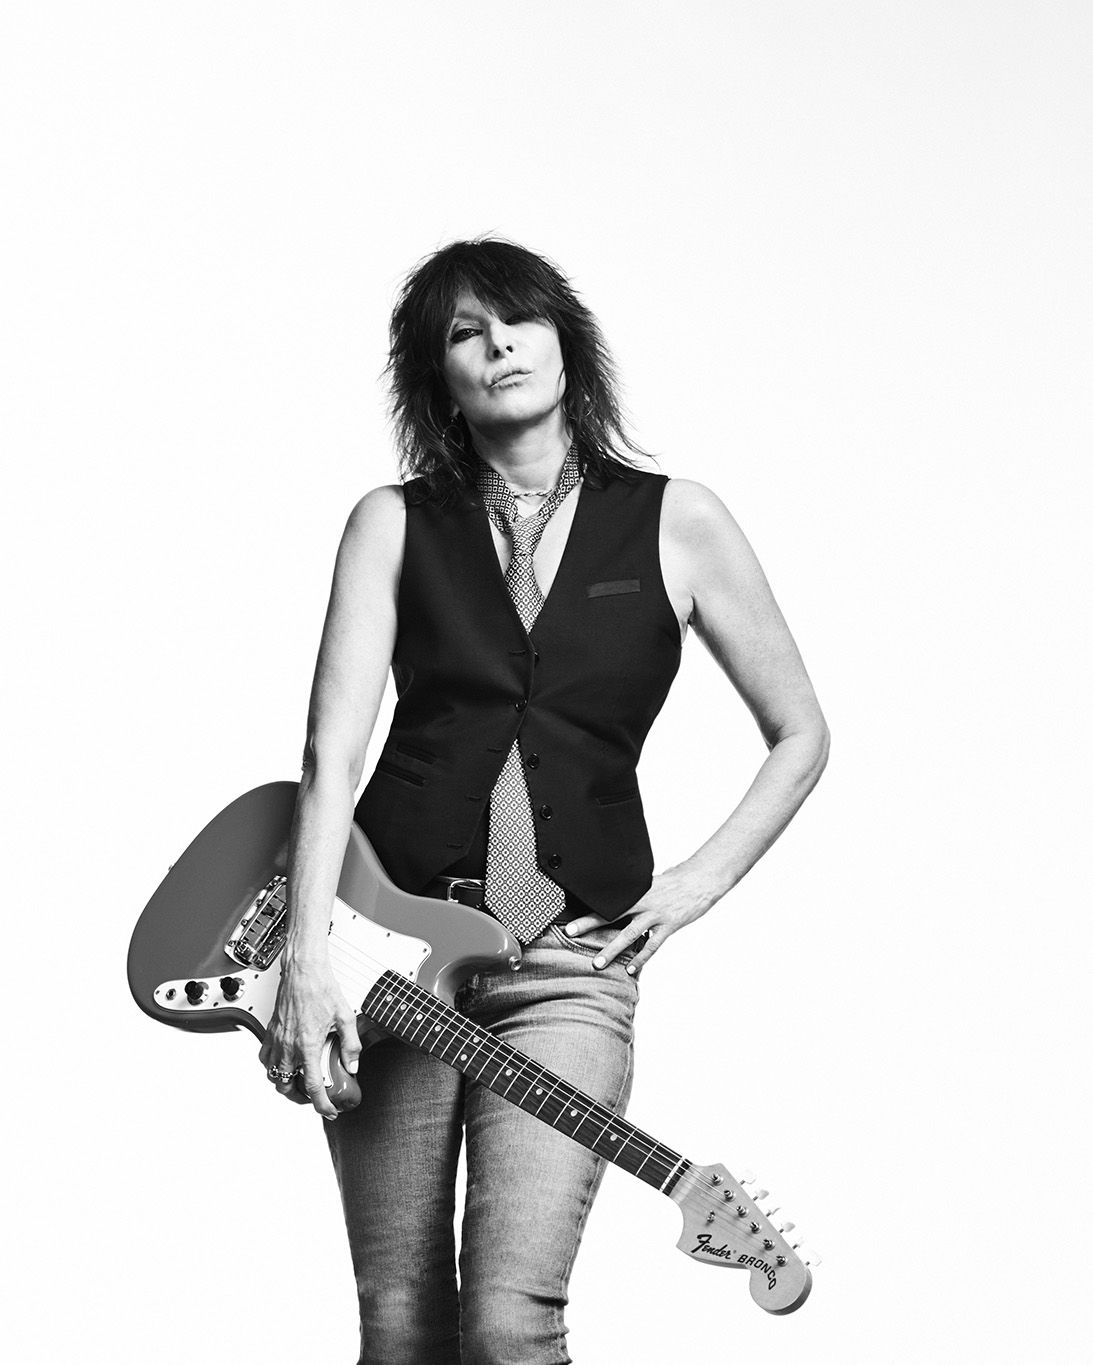 press session for Chrissie Hynde: Stockholm